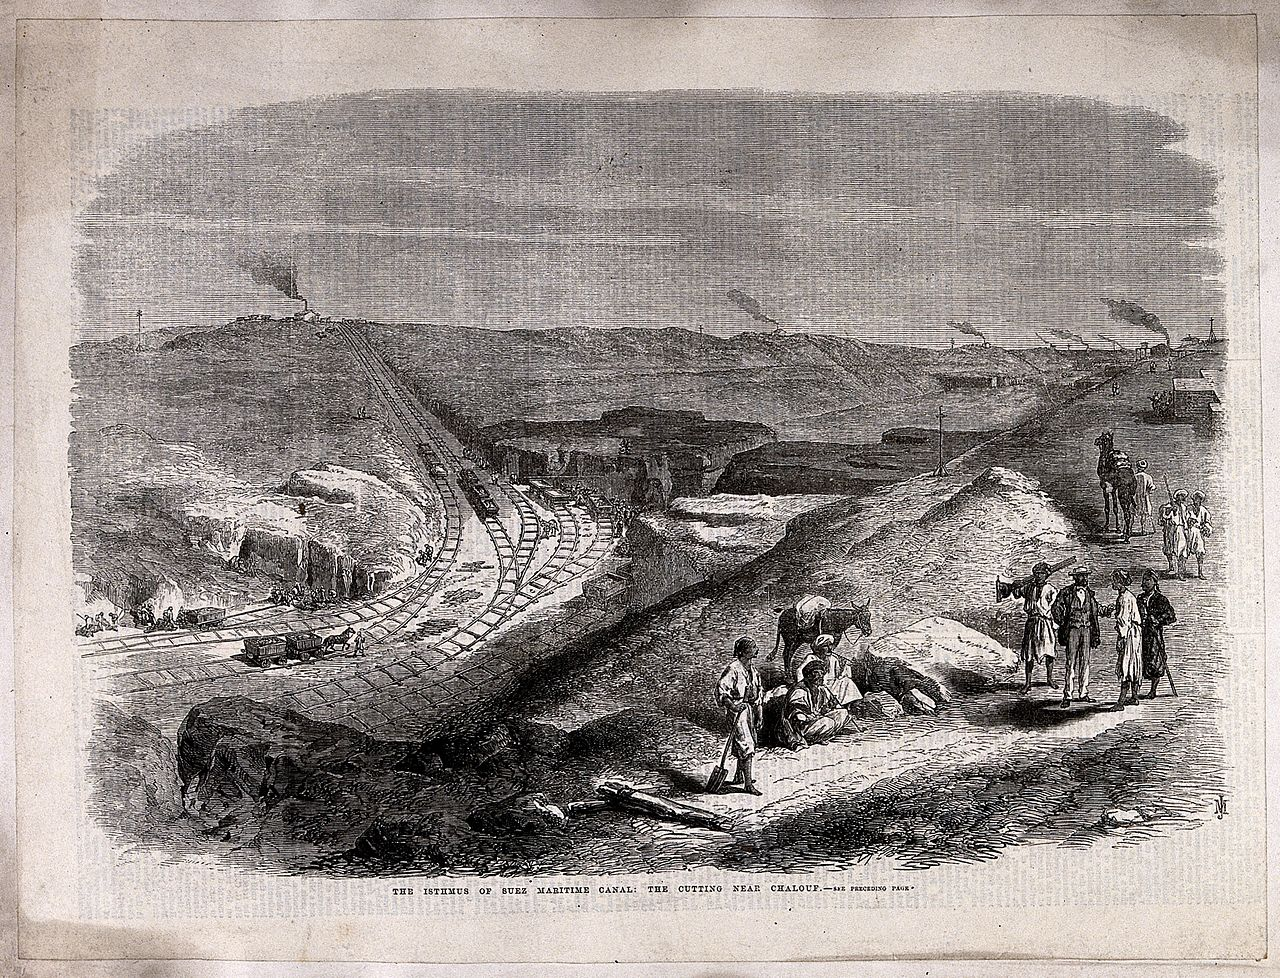 Civil engineering; work on the Suez canal. Wood engraving by Wellcome V0024392.jpg